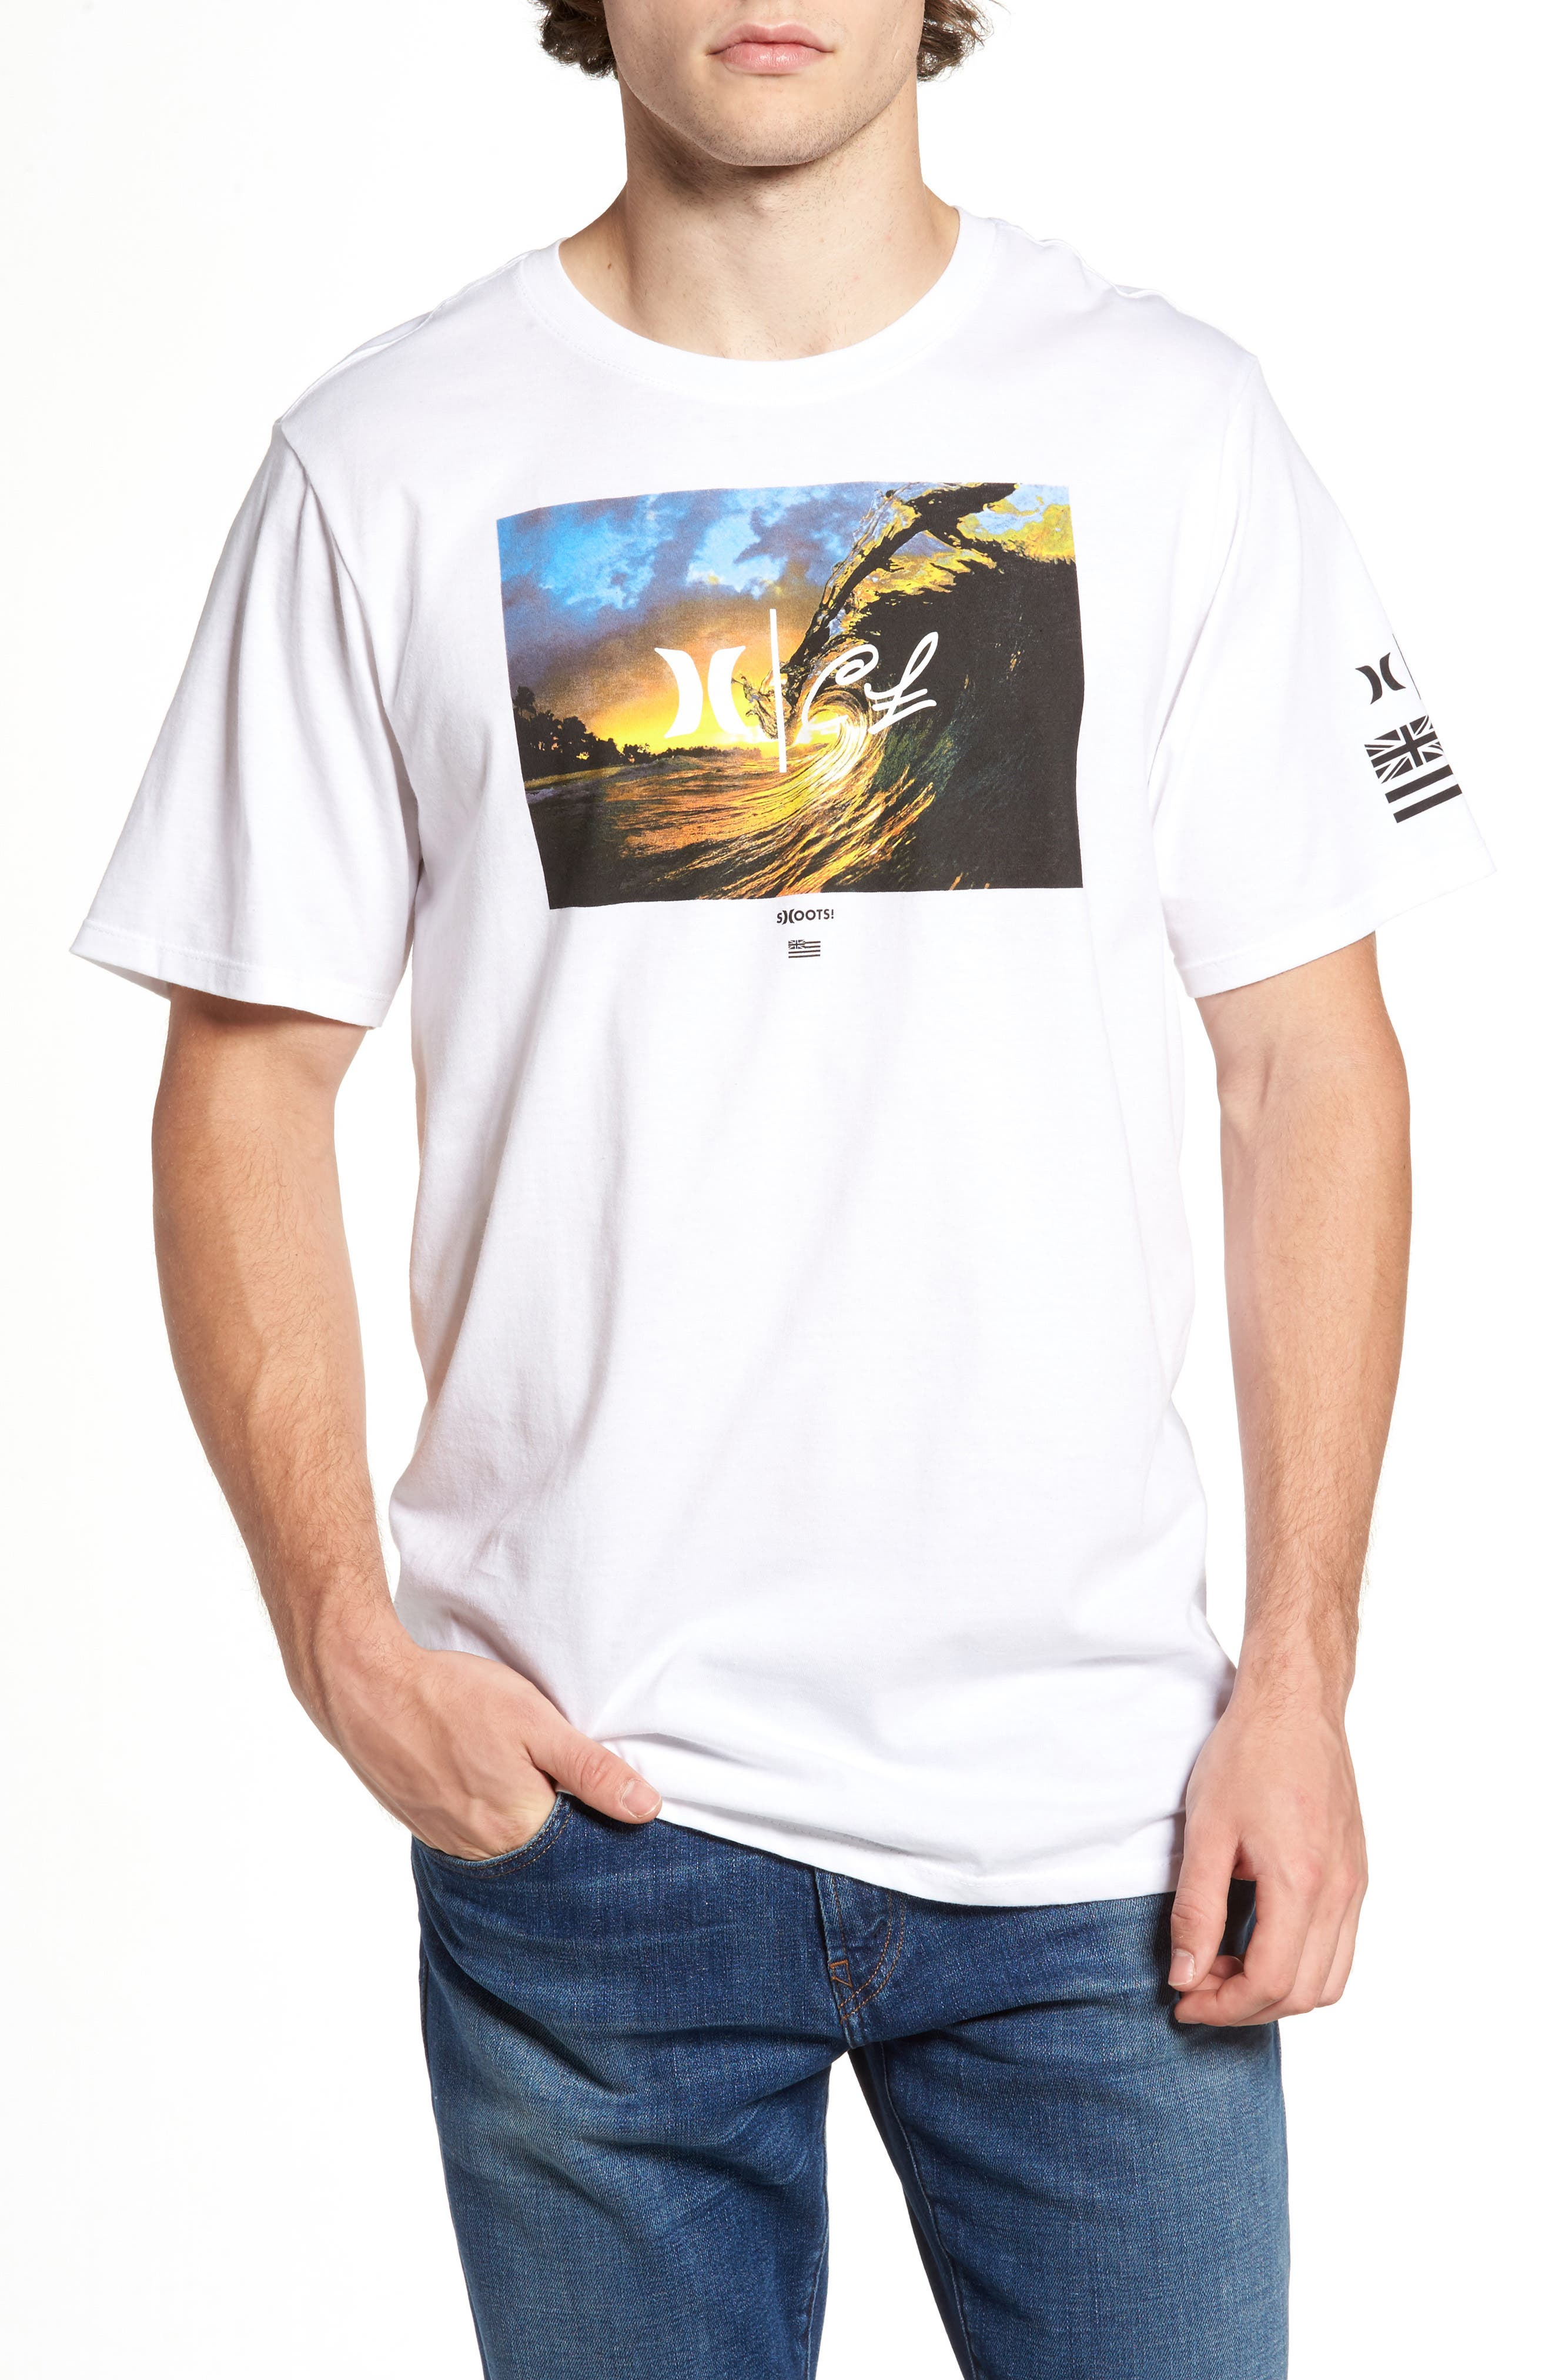 Hurley Clark Little - King Kamehameha Graphic T-Shirt